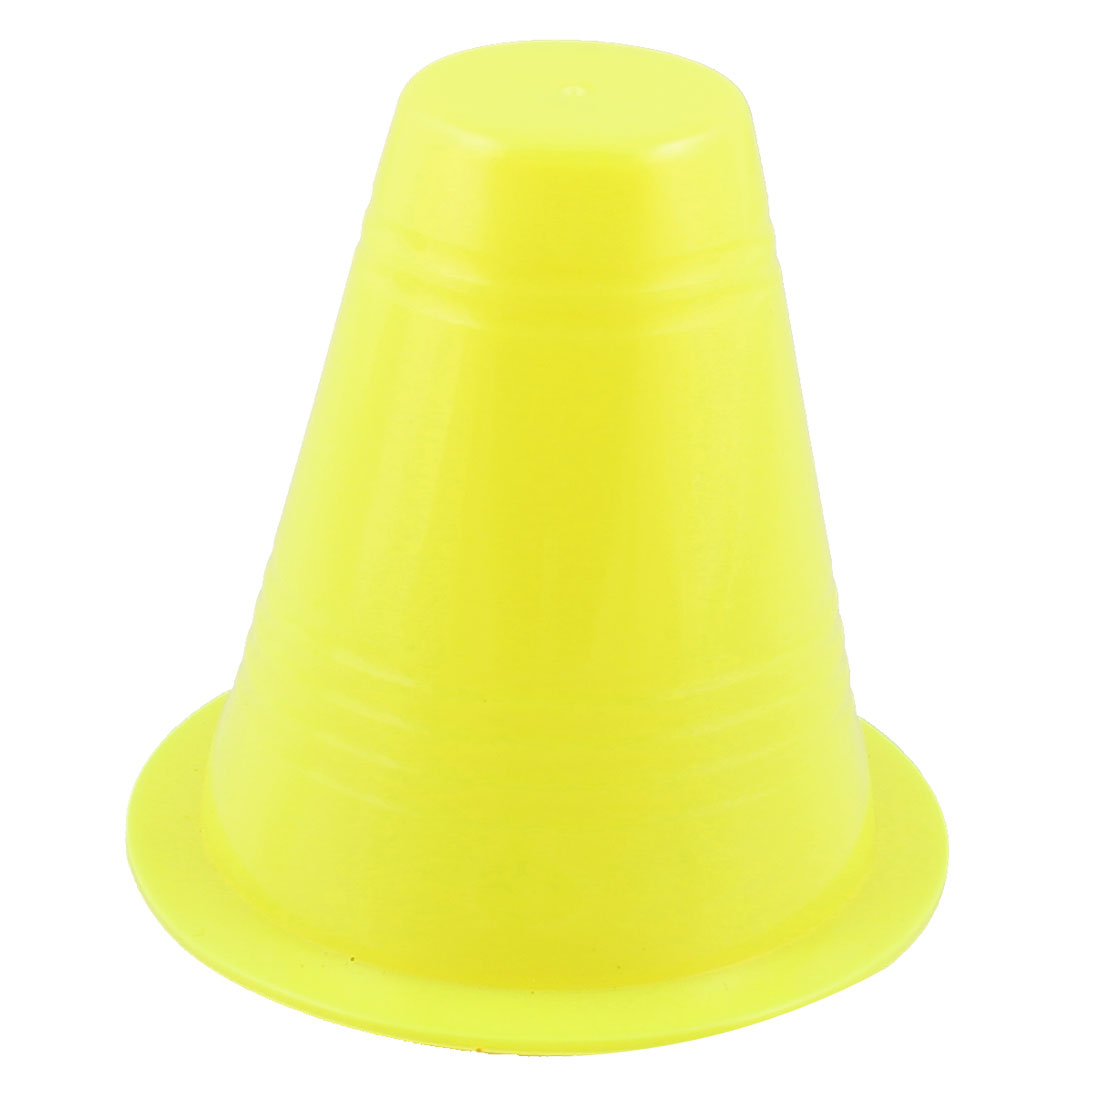 Roller Skating Yellow Soft Plastic Road Cone Sign Mini Roadblock for Kids